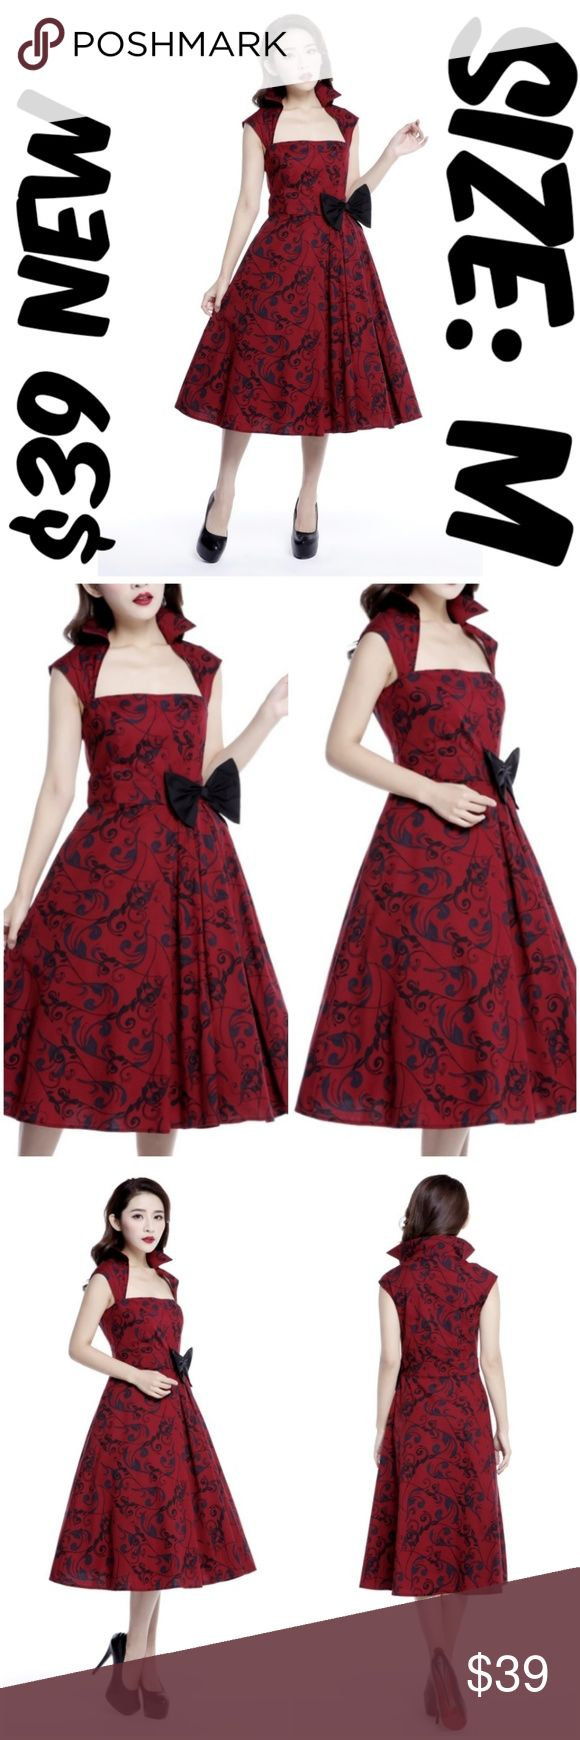 """Bow Pin Up Collar Dress Vintage 1950s Clothing Gir Bow Pin Up Collar Dress Vintage 1950s Clothing Girl BUST: 36"""" WAIST: 28"""" LENGTH: 44"""" CONDTION: NEW WITHOUT TAGS MATERIAL: 97% COTTON 3% SPANDEX TAG SIZE IS EUROPEAN 38 WHICH IS U.S. MEDIUM #C6 Dresses"""